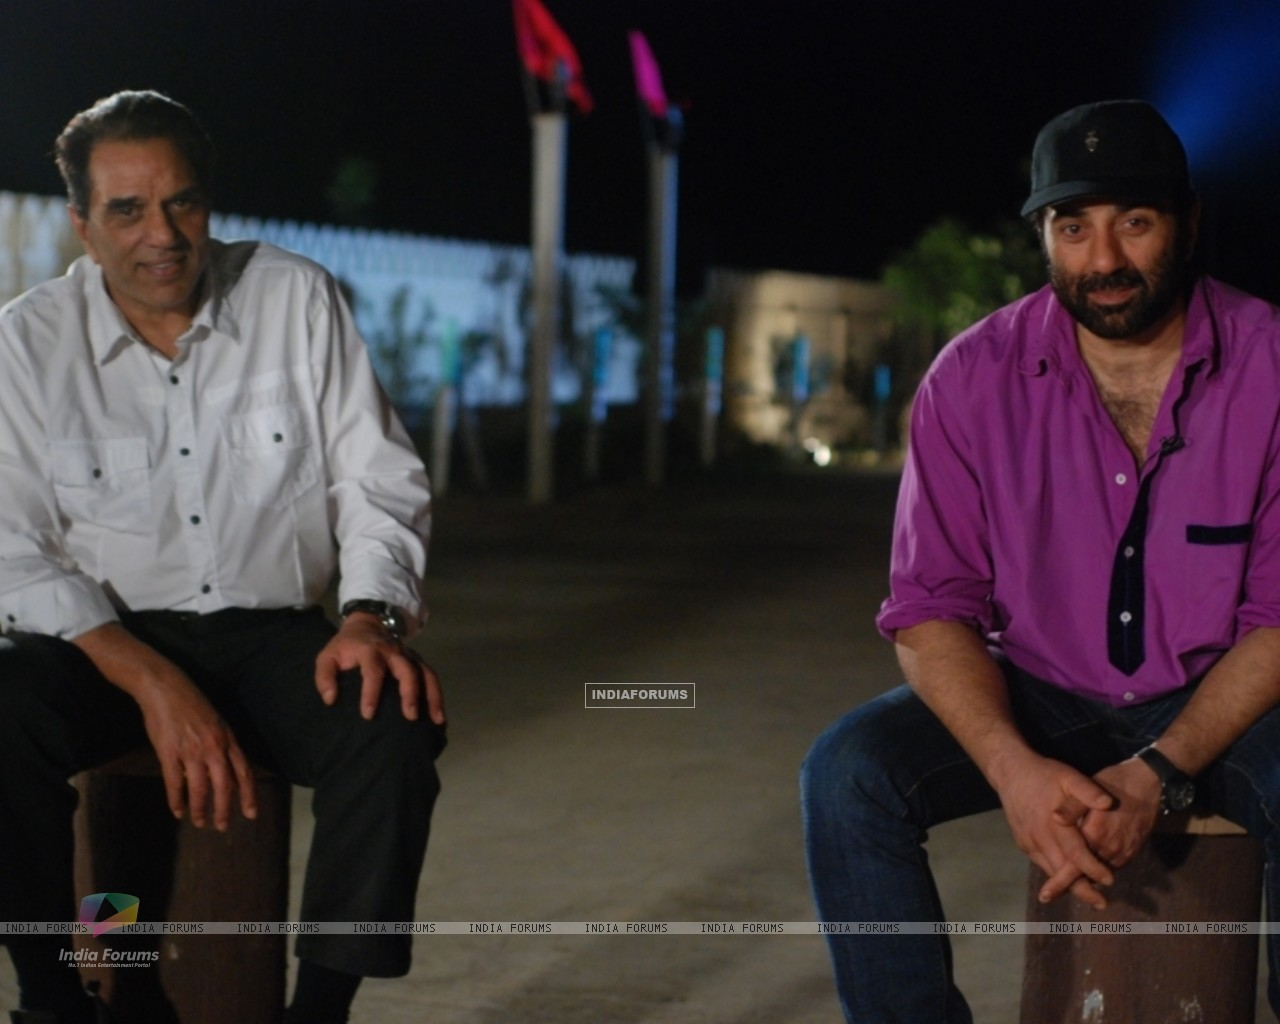 Father and Son in tv show Mahayatra Rishton Ka Anokha Safar (42002) size:1280x1024